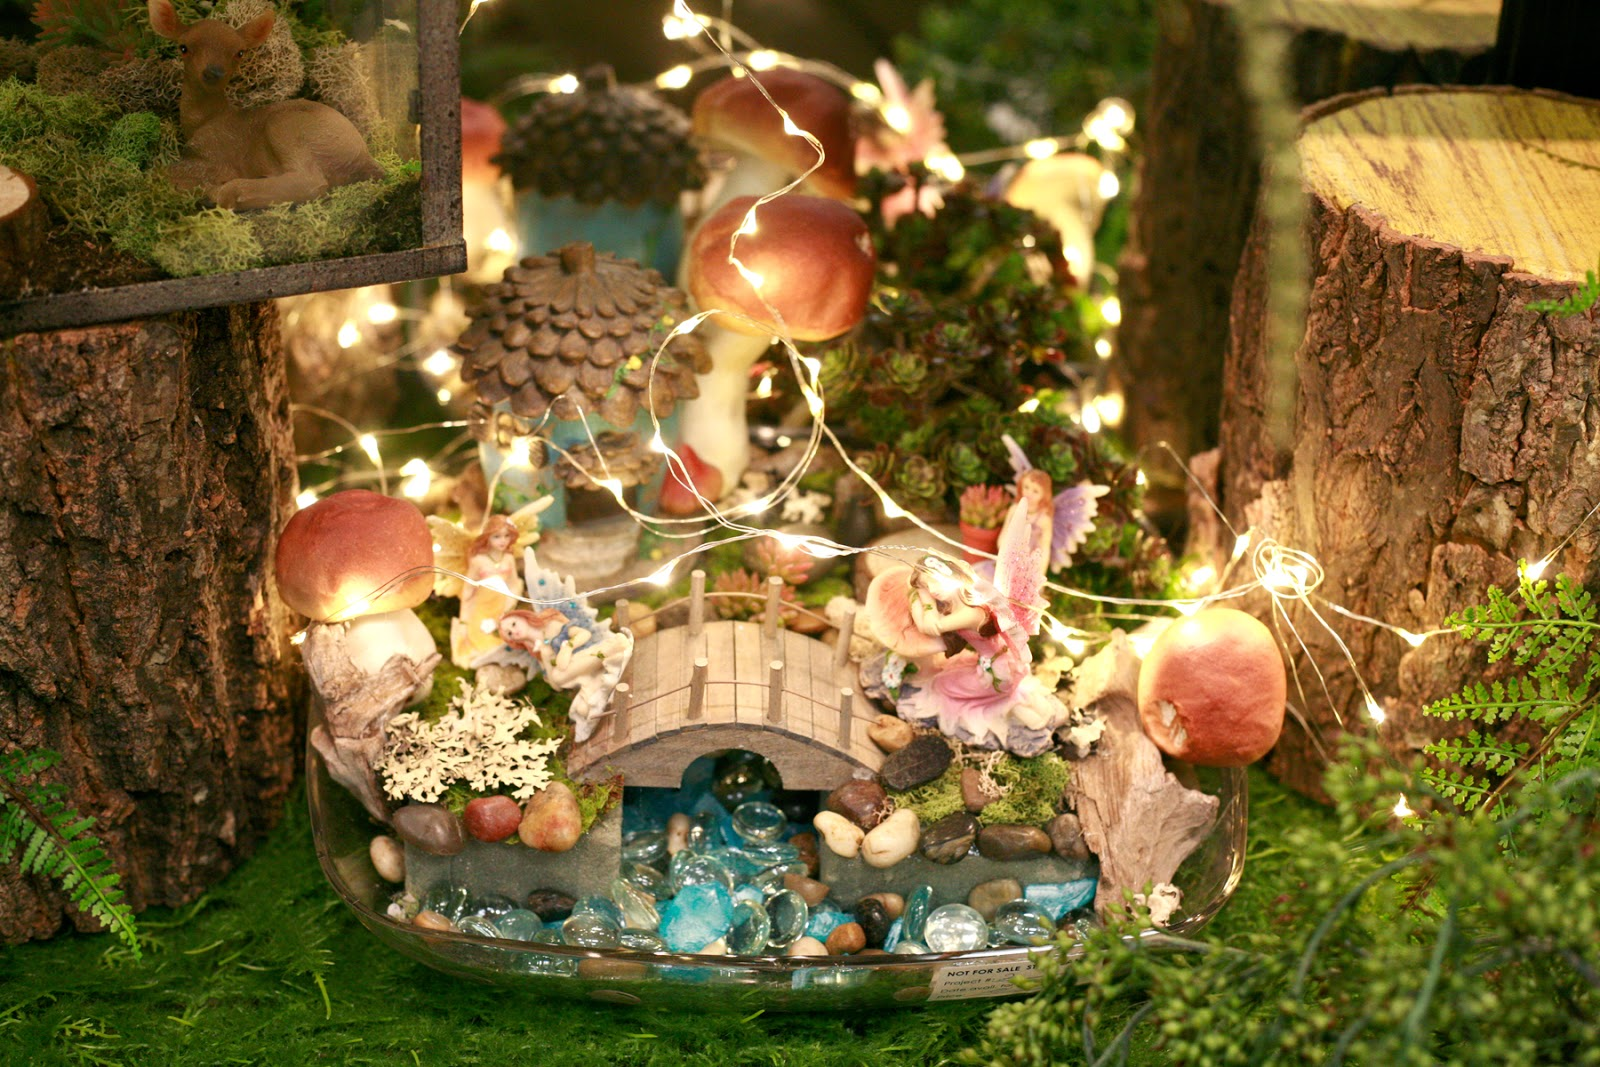 ... Crafts and Frame Shop: Creative Fairy Garden Ideas and Supplies